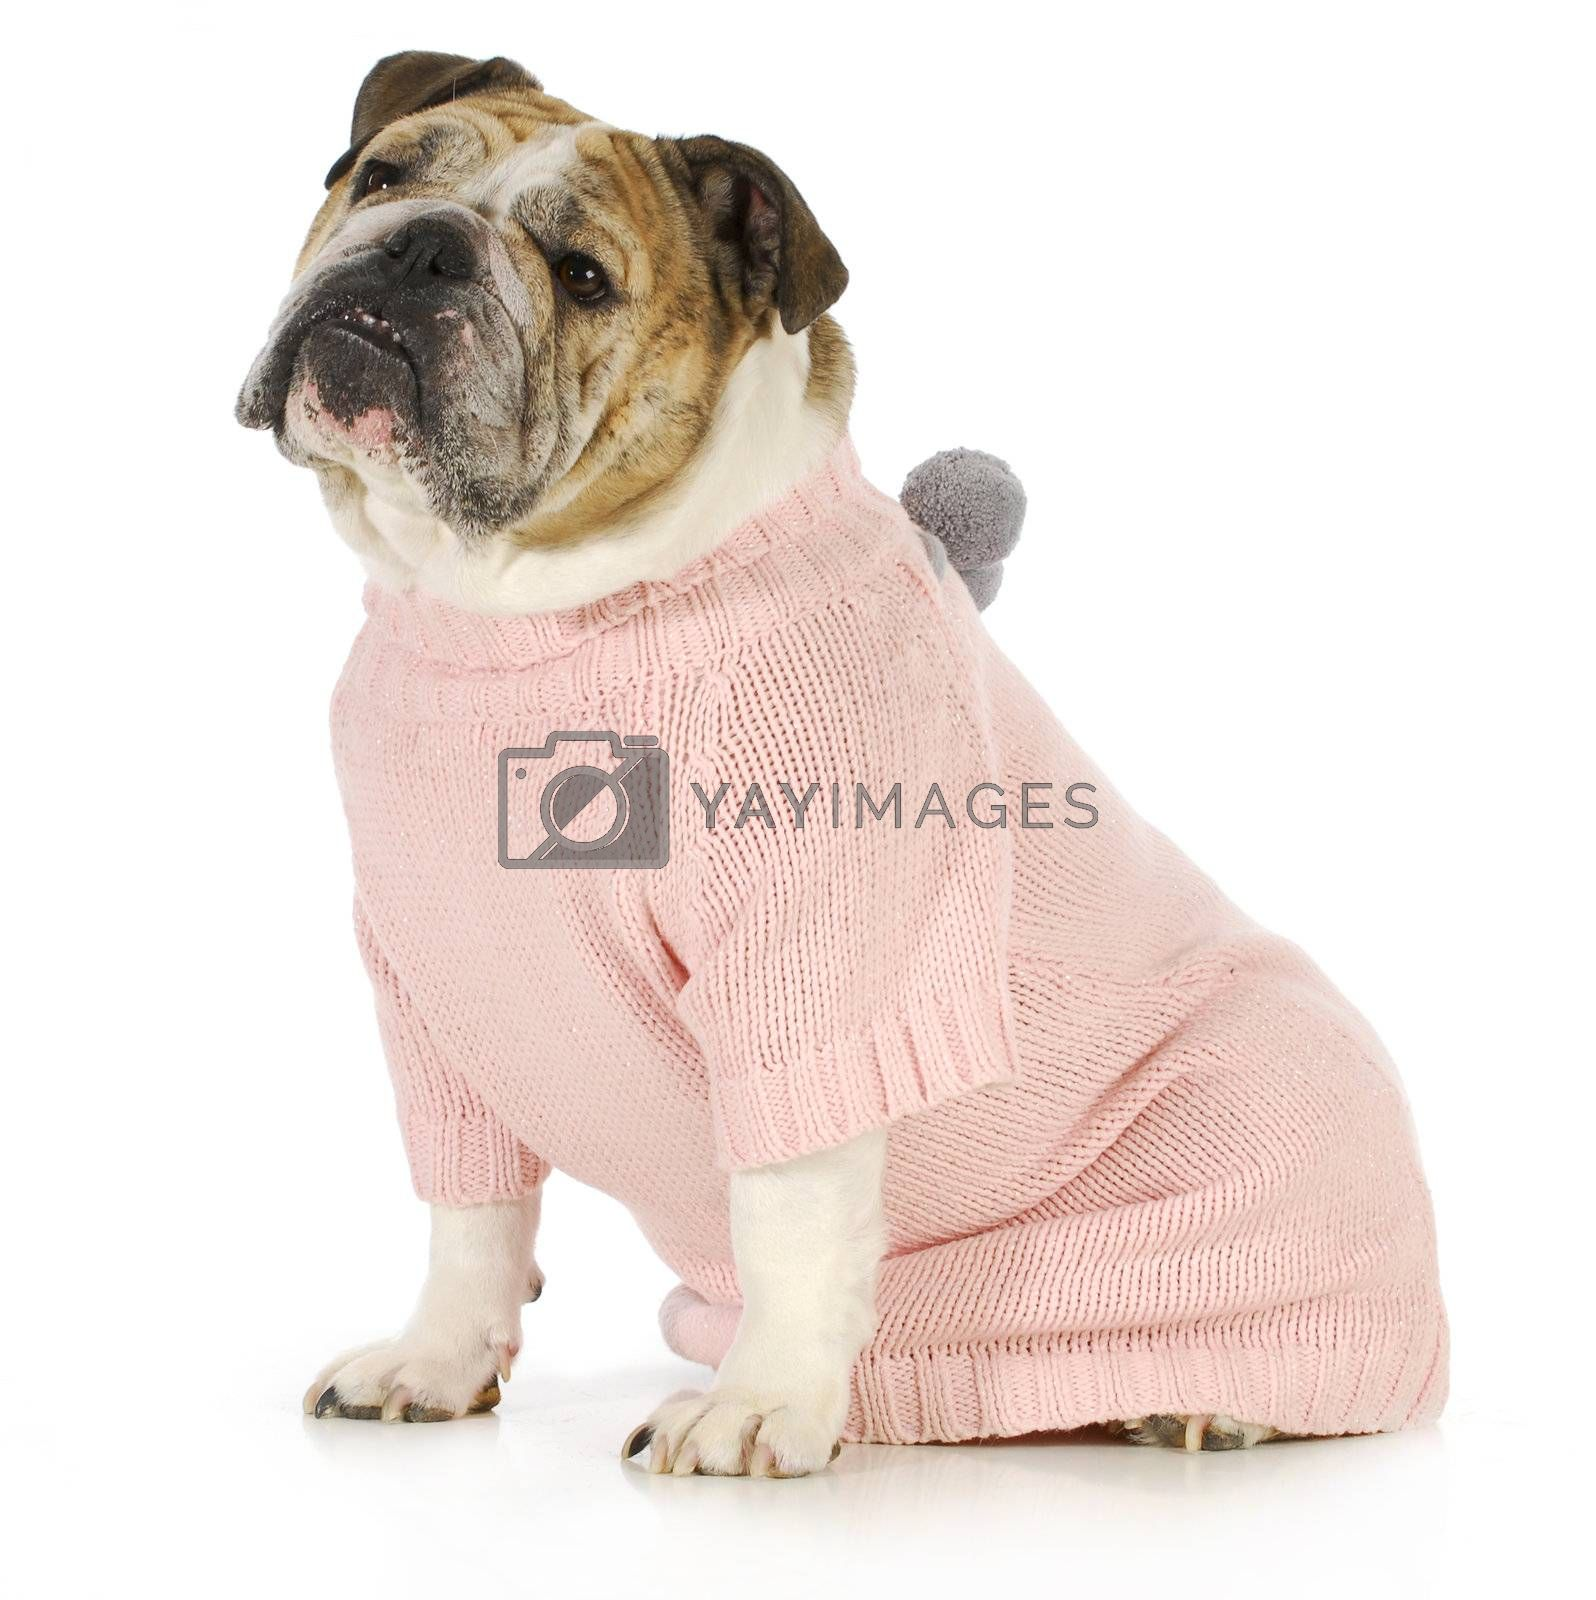 dog wearing sweater - english bulldog wearing pink dog coat sitting on white background